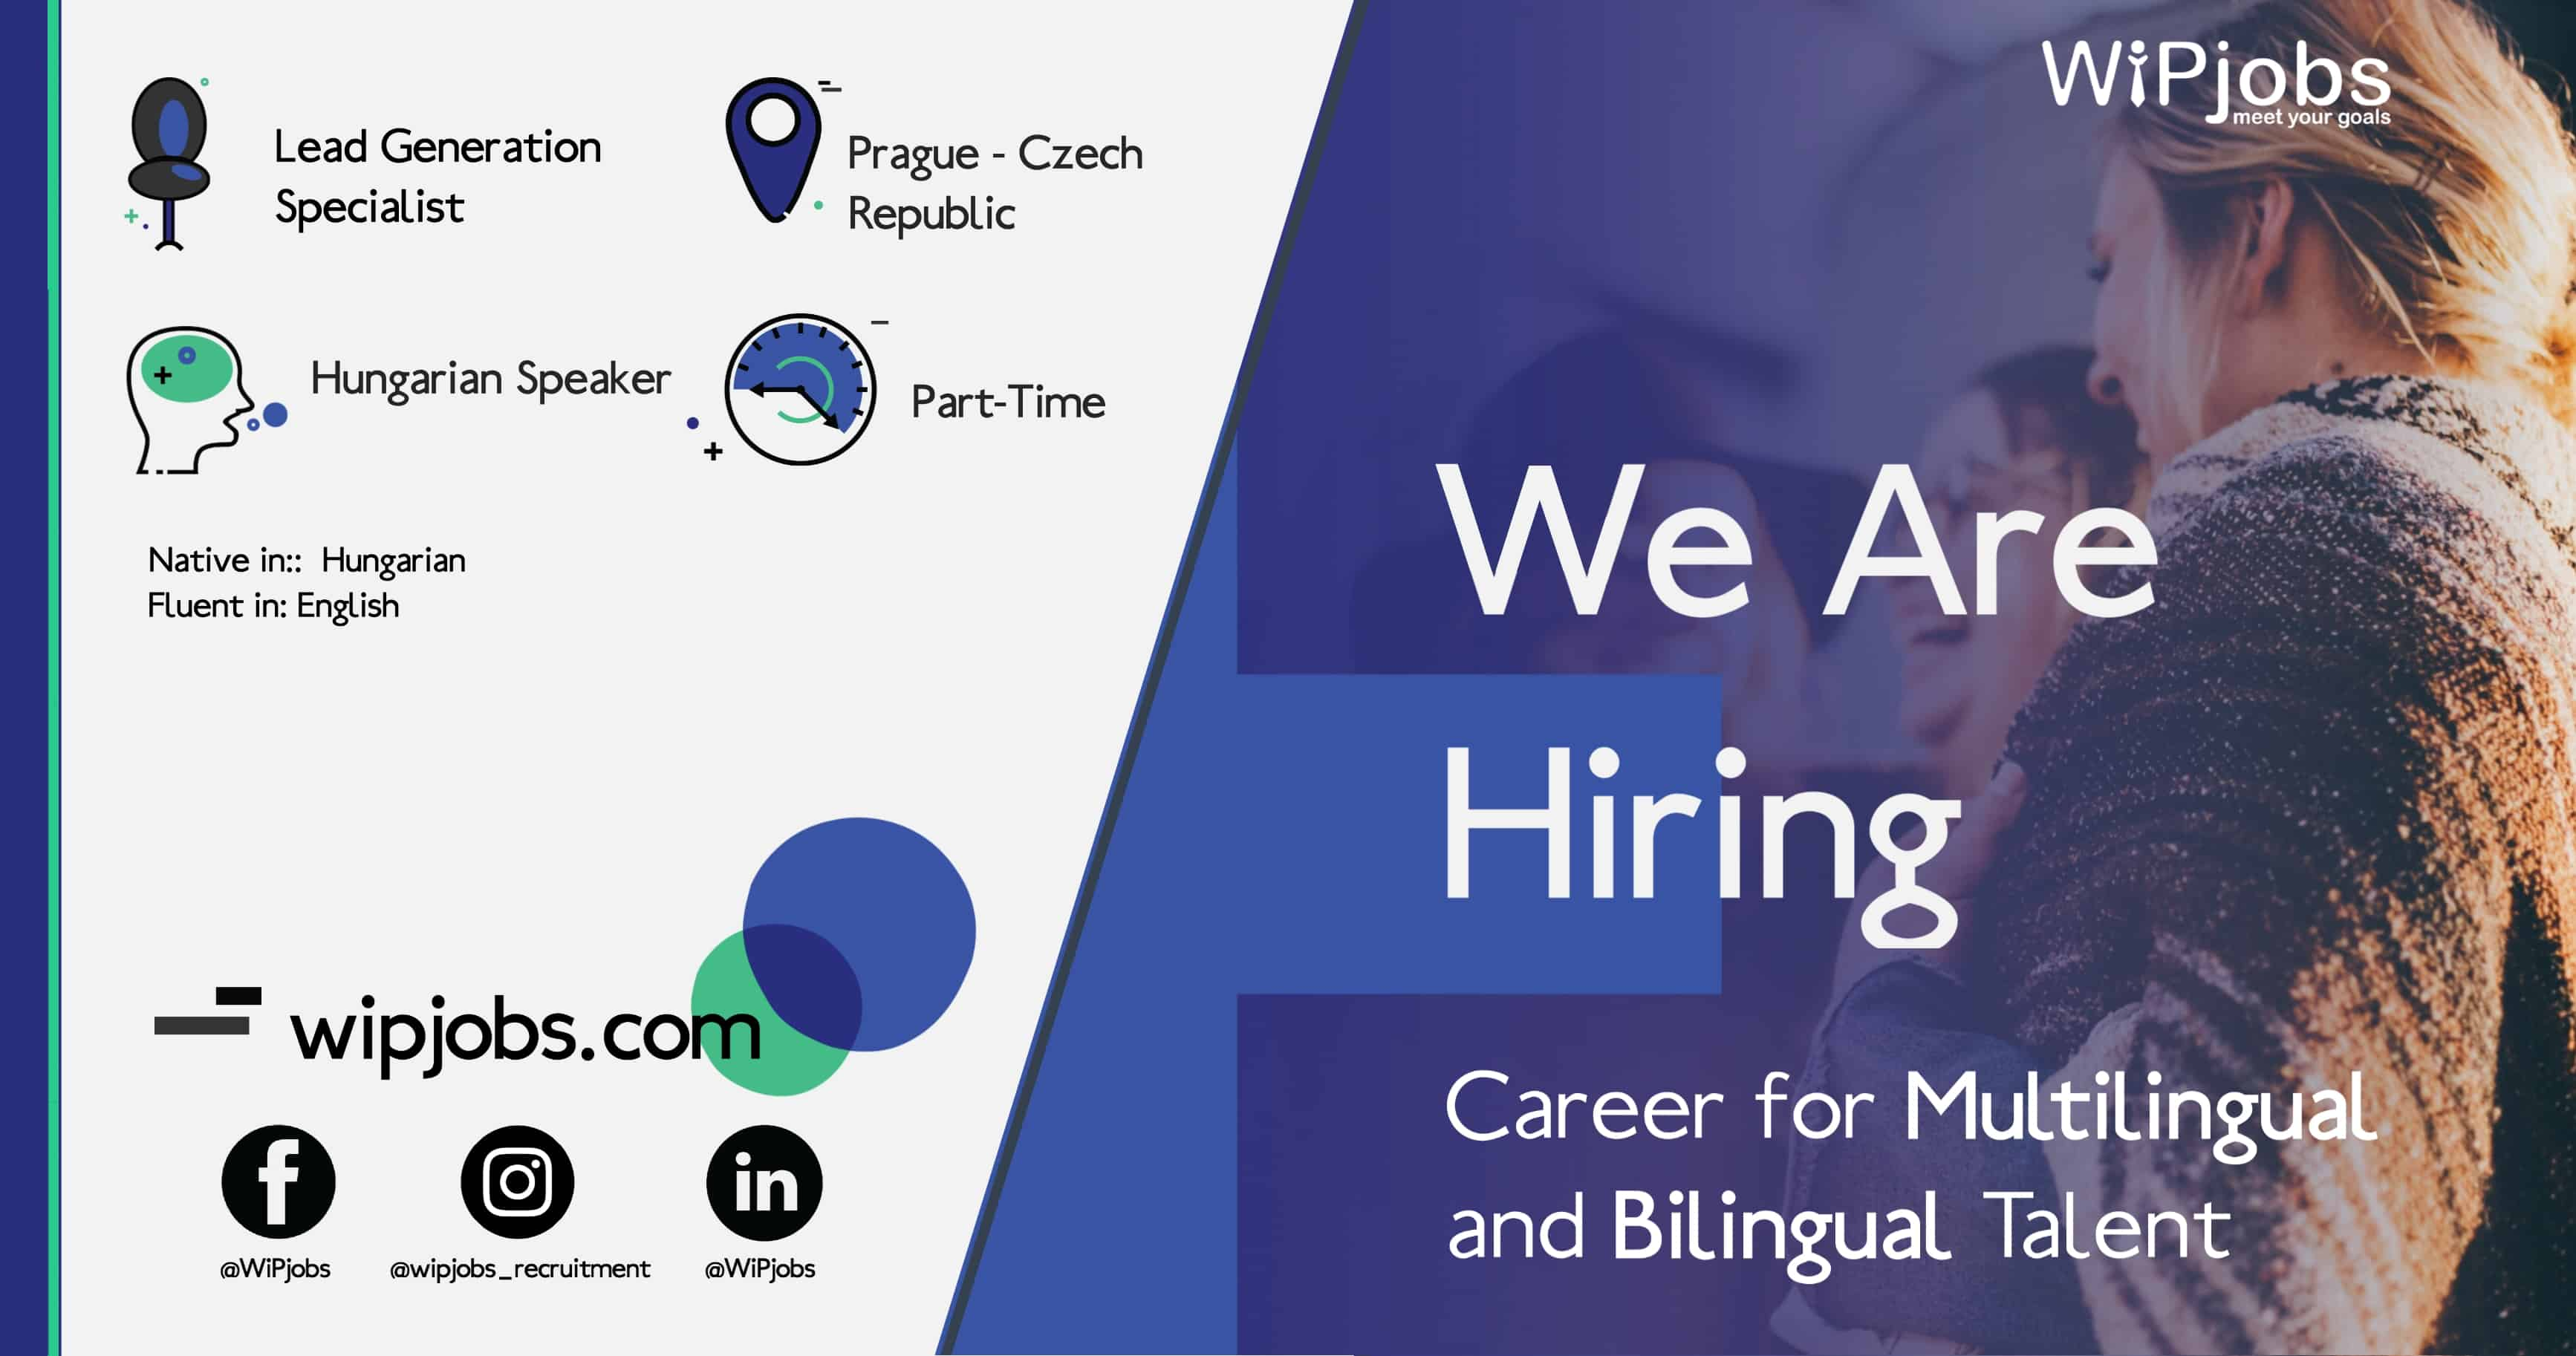 Lead Generation Specialist Hungarian Speaker